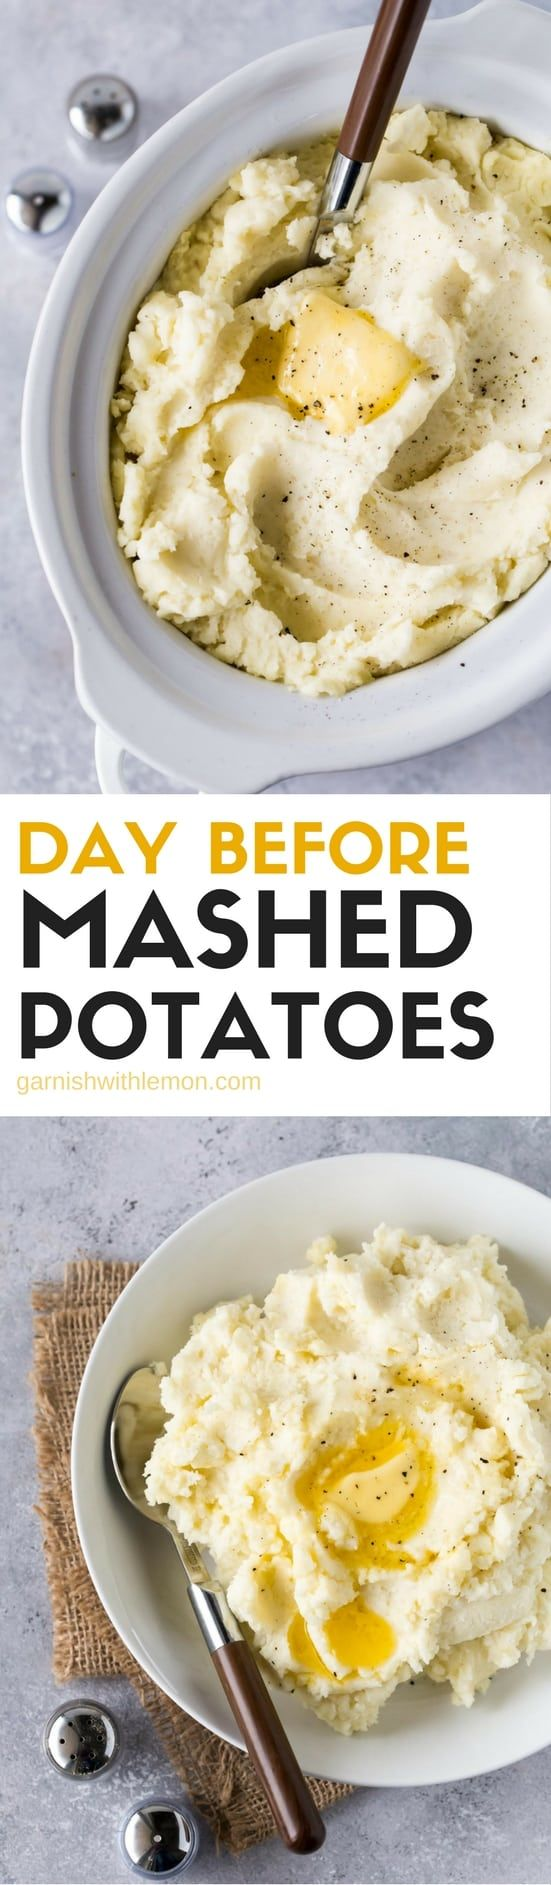 These Day Before Mashed Potatoes are a lifesaver whenreheat in your slow cooker! #thanksgiving #potatoe #crockpot